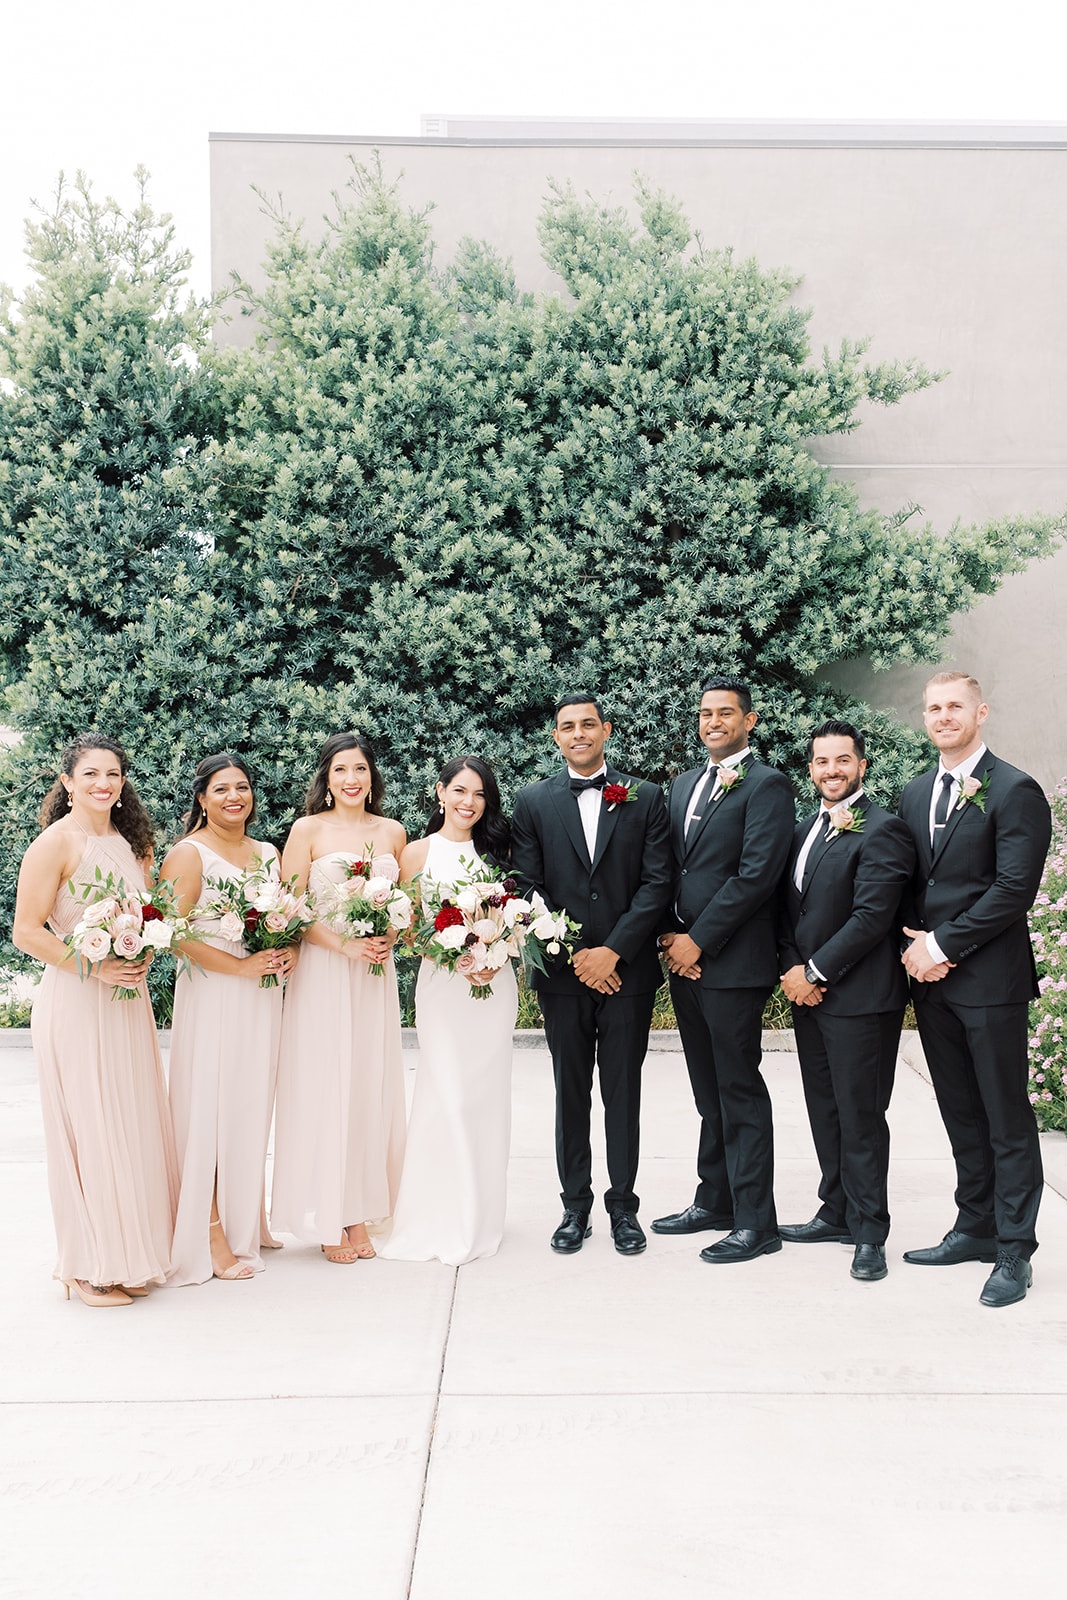 healthy relationships within bridal party